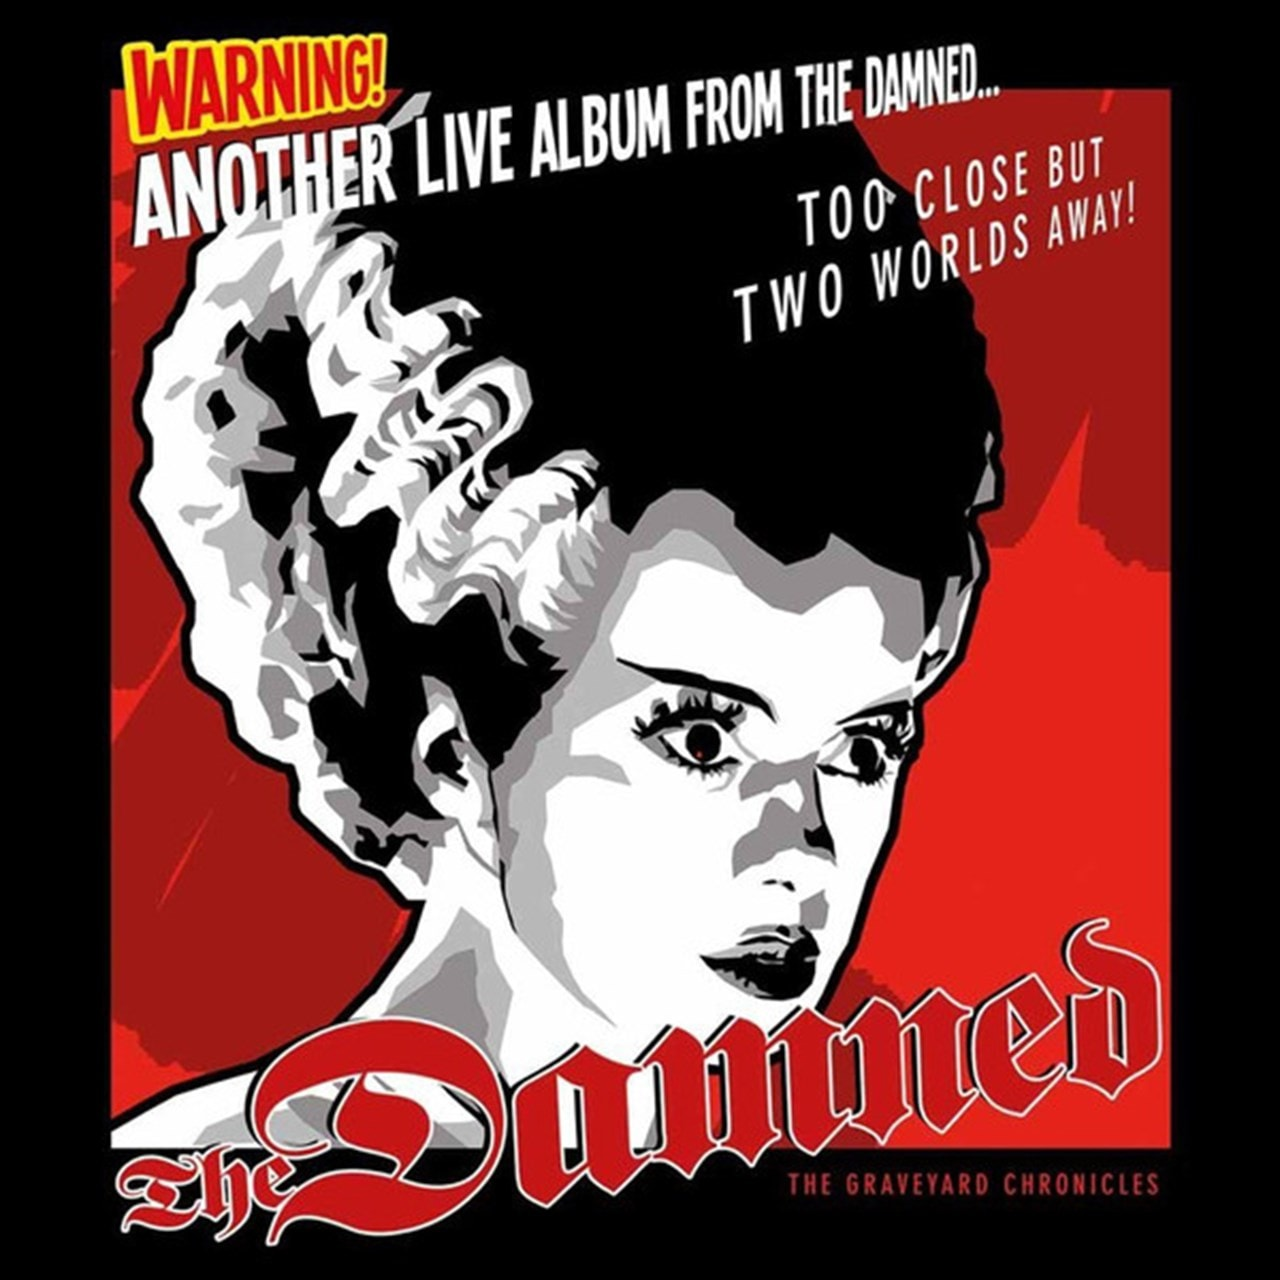 Another Live Album from the Damned - 1